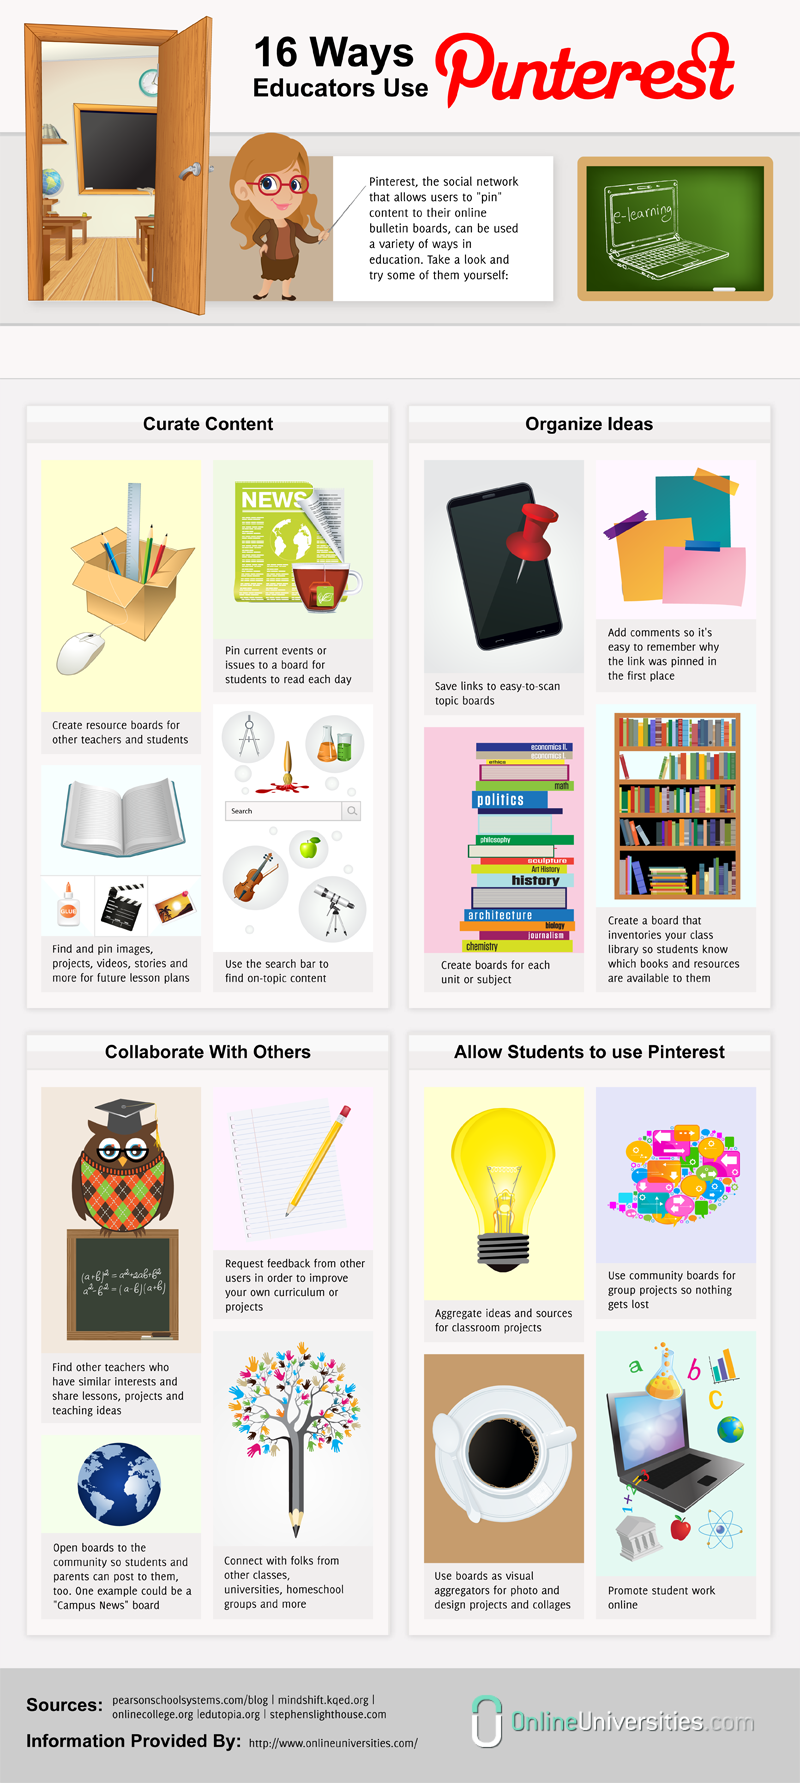 Uses of Pinterest in Education [INFOGRAPHIC]